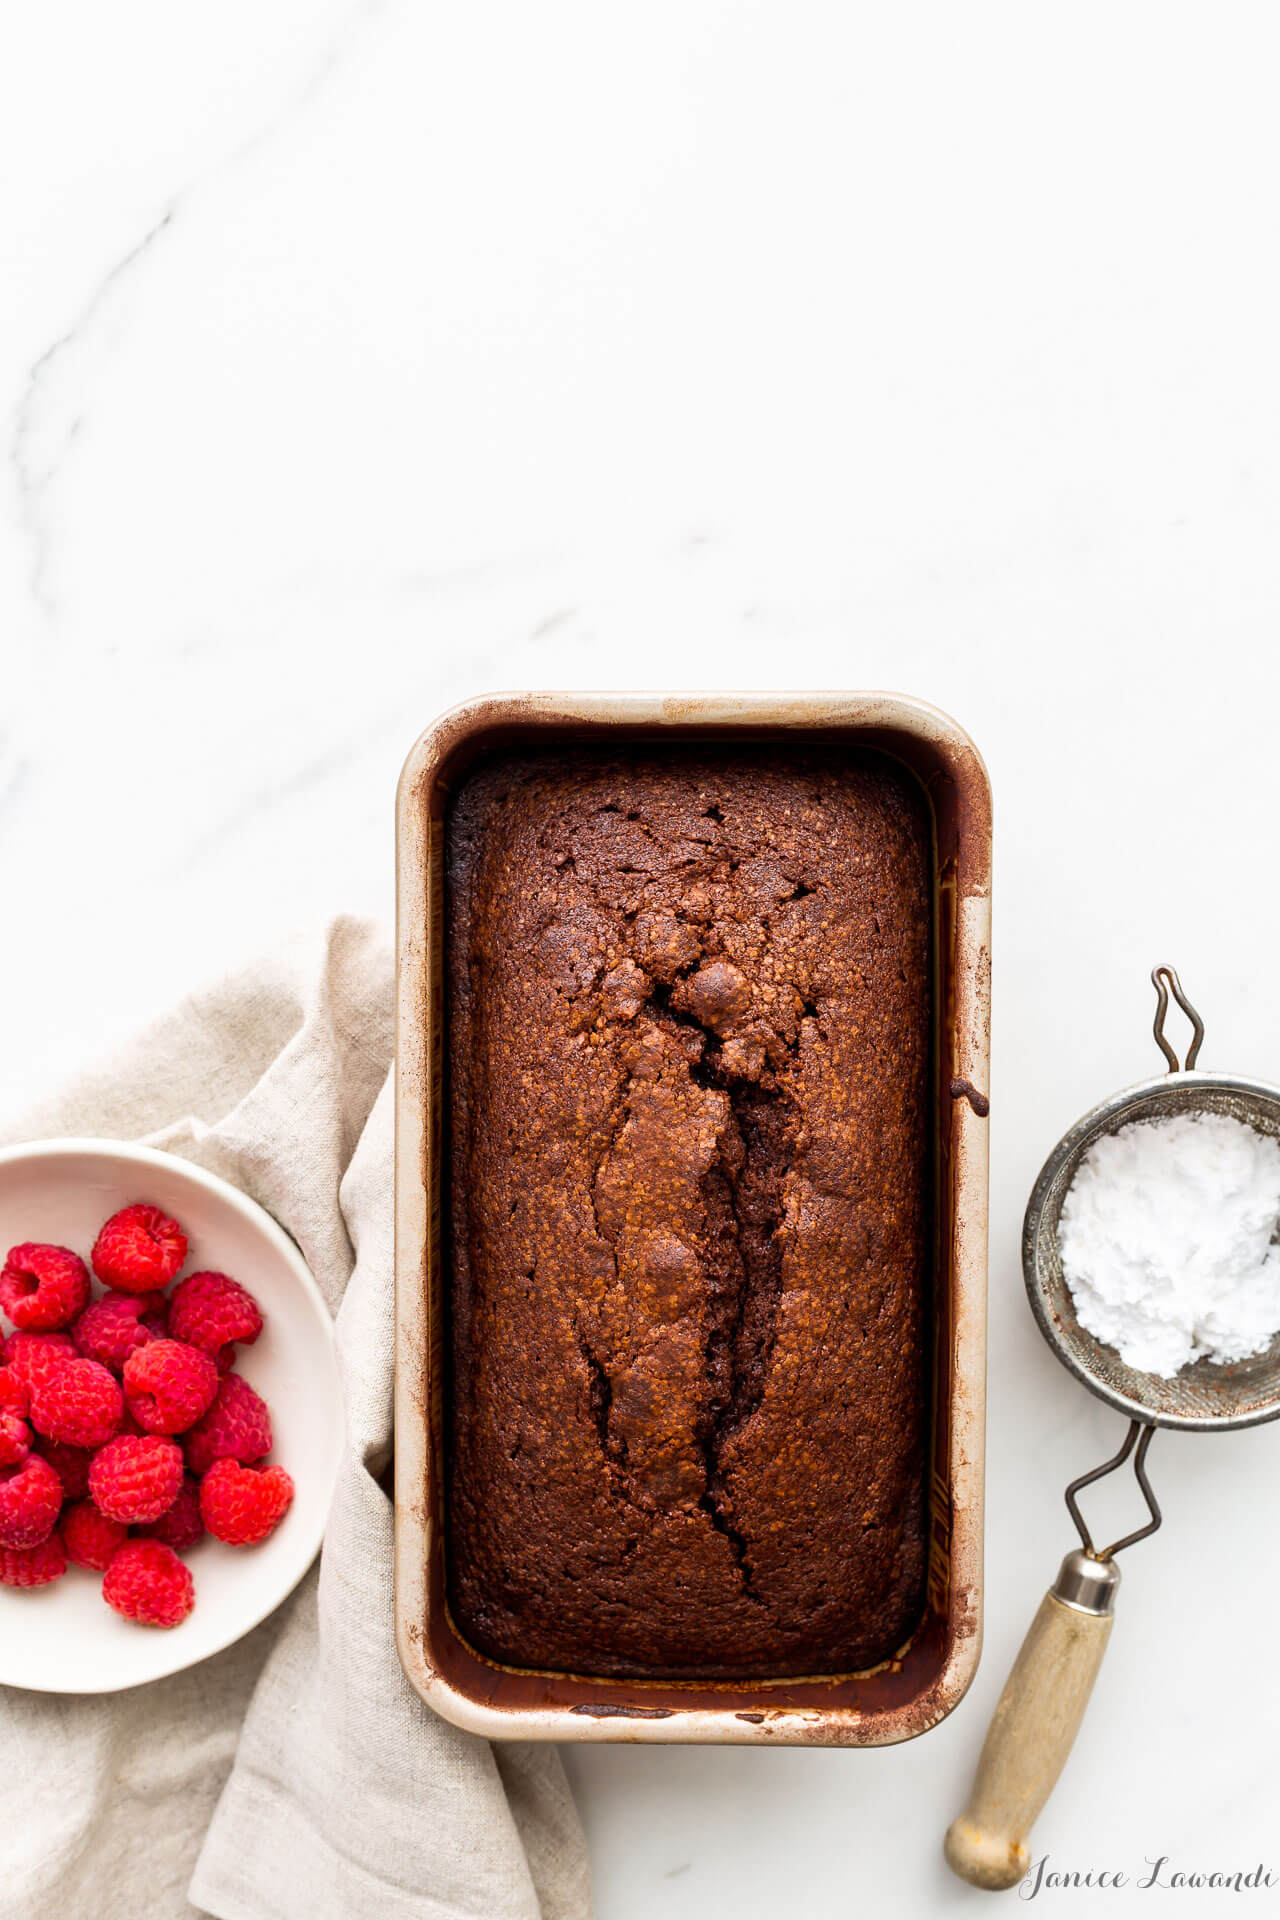 Chocolate pound cake baked in a loaf cake pan, dusted with powdered sugar using a mini strainer and served with a bowl of fresh raspberries